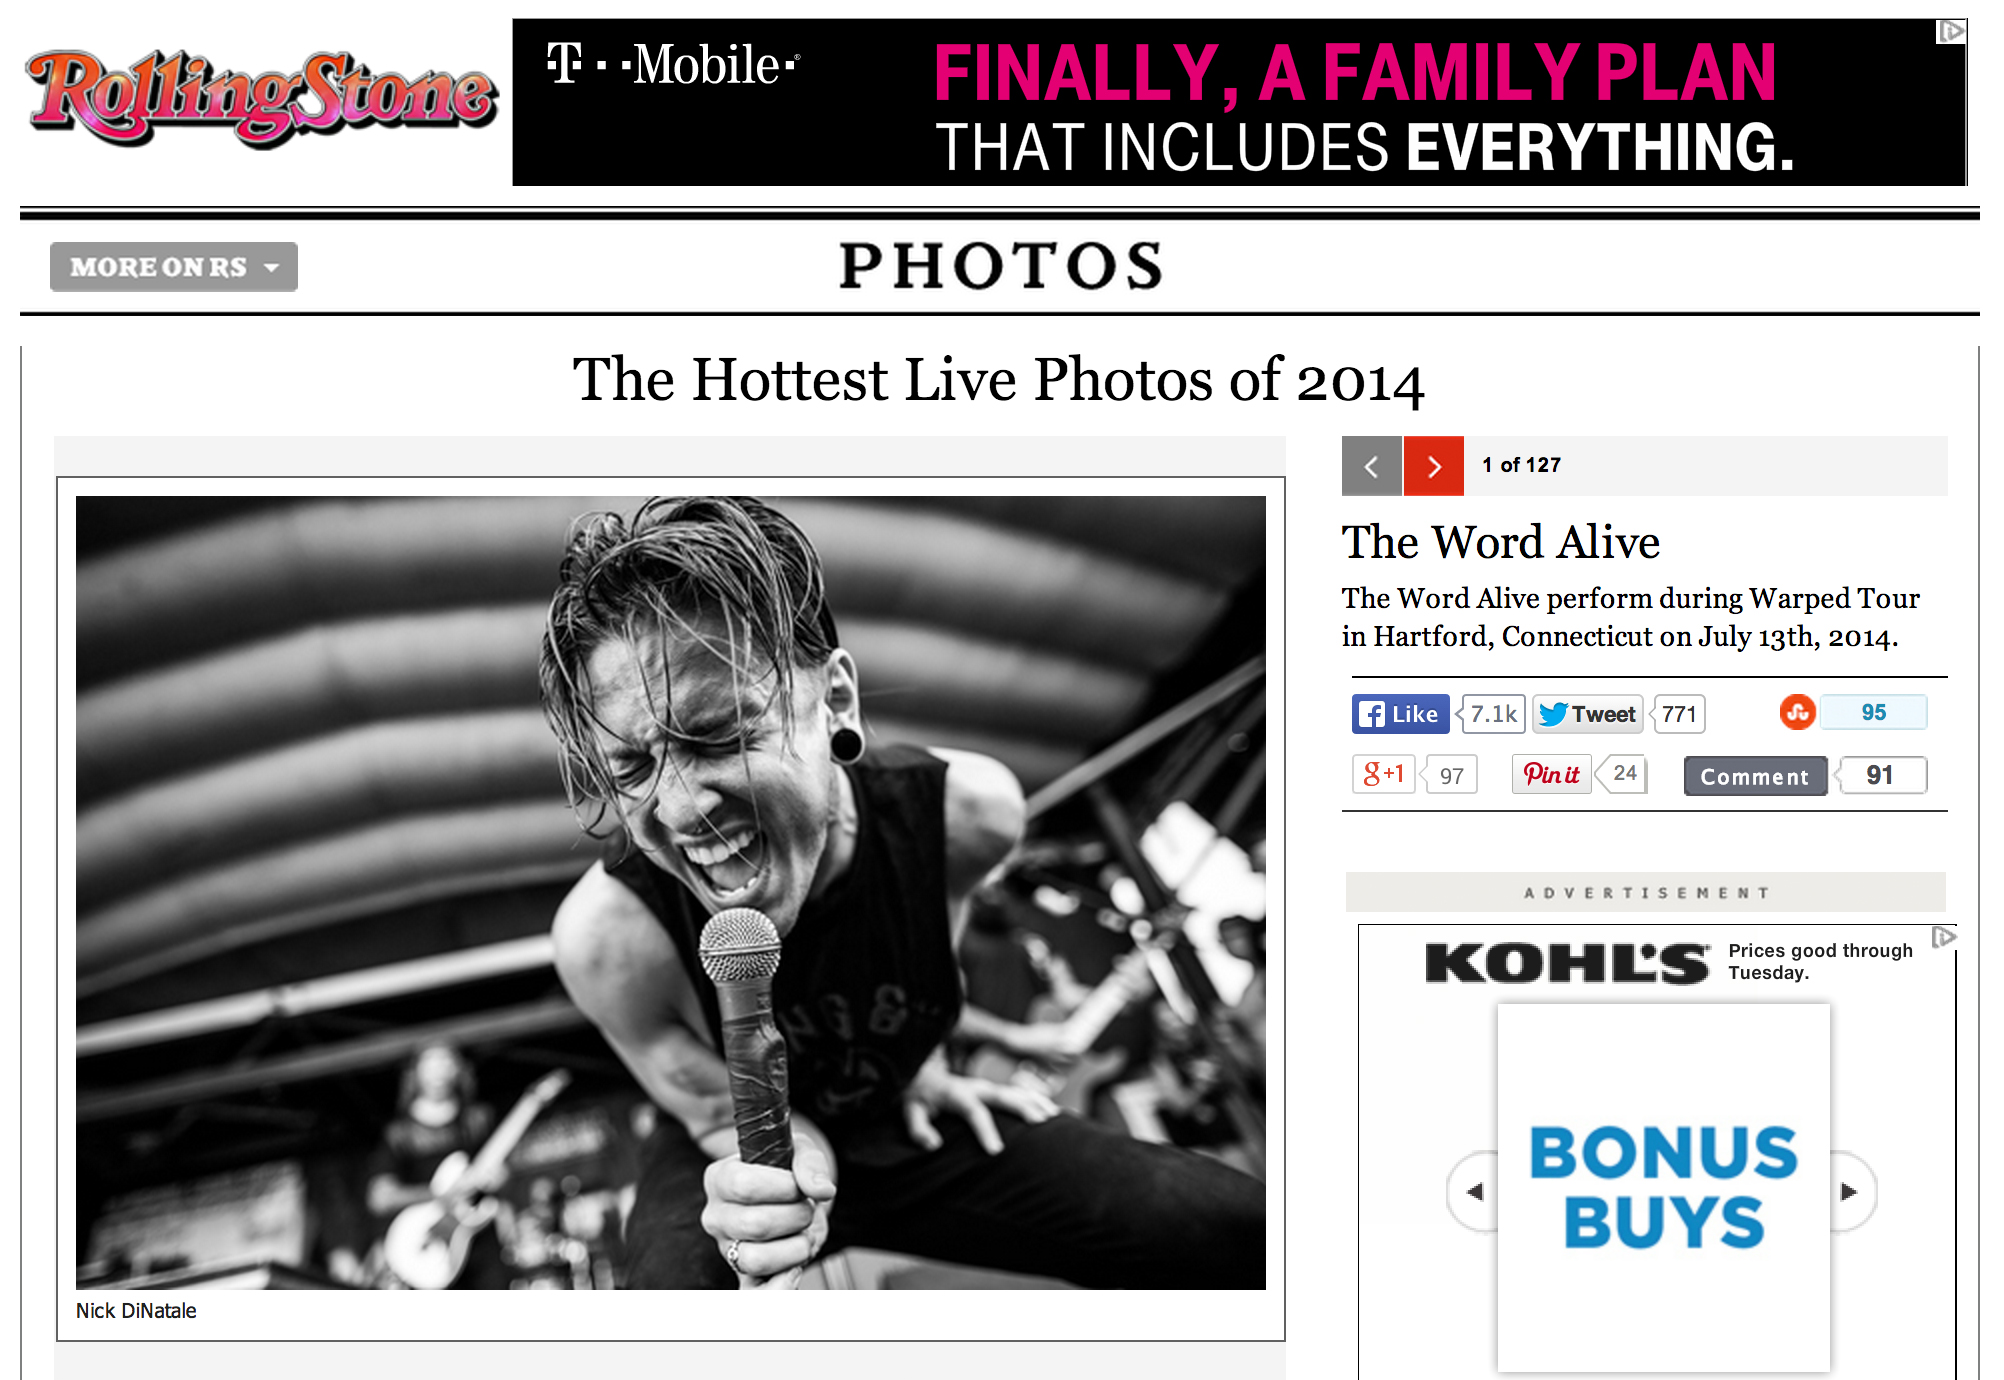 Rolling Stone - July 14th, 2014   The Hottest Live Photos of 2014